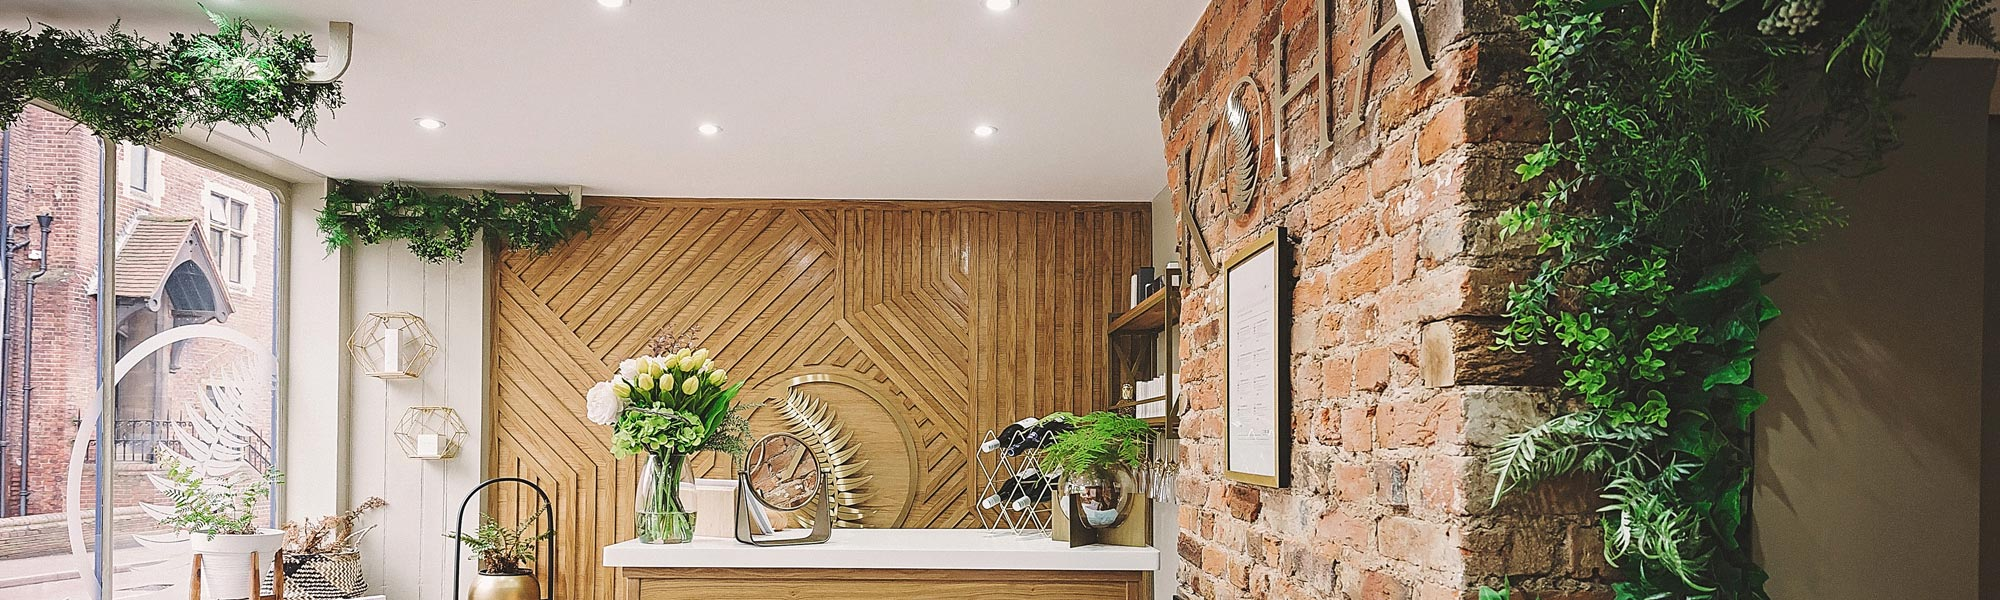 Berkhamsted Aesthetic Clinic Koha Aftercare Page Header Image